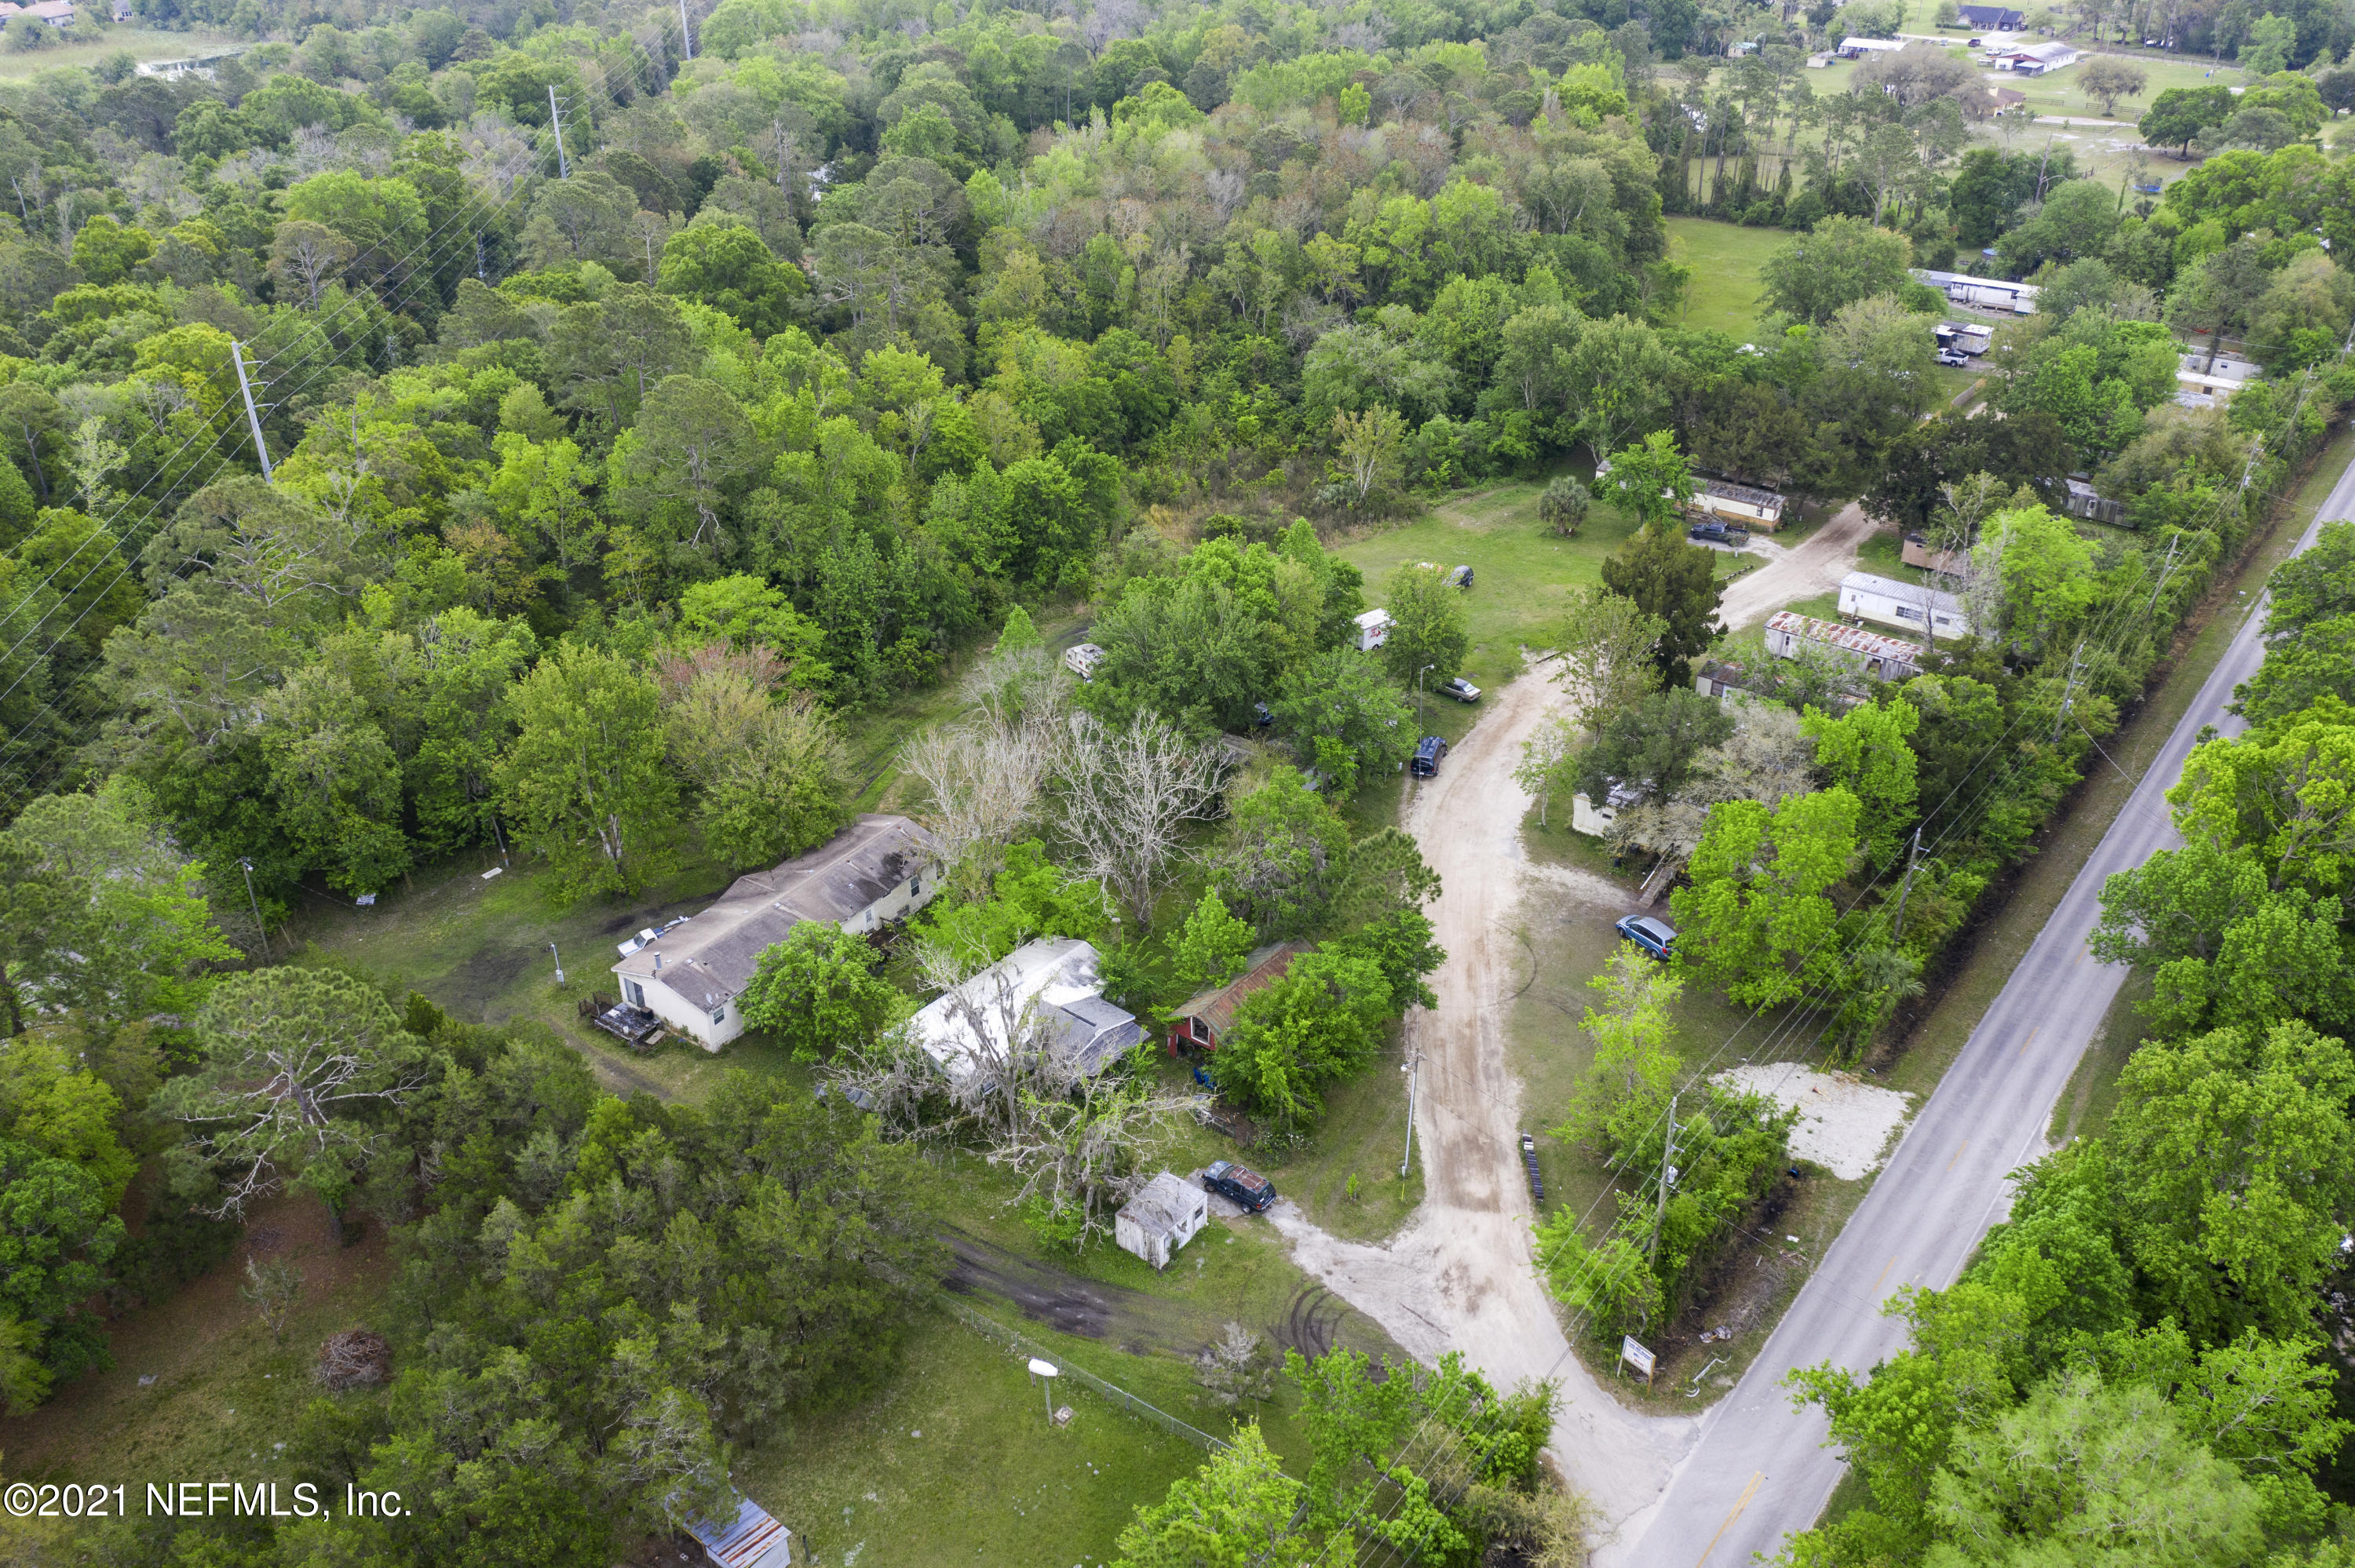 Property is in Opportunity Zone. 6.54 Acre parcel with two mobile home units and a barn located on the parcel. Mobile #1 is a 2007 Fleetwood Doublewide 4/2 (30x80) at 100k value. Mobile #2 is a 1980 Smaller 4/2 Doublewide(28x55) needs 25k work. Barn is 30x20. Well and septic on the property. Could be good for a neighborhood development with access to Four Mile and Deer Run. Presented Separately or in conjunction with 2510 Deer Run Rd, a 4 acre 23 unit mobile home park. Inquire for more information.